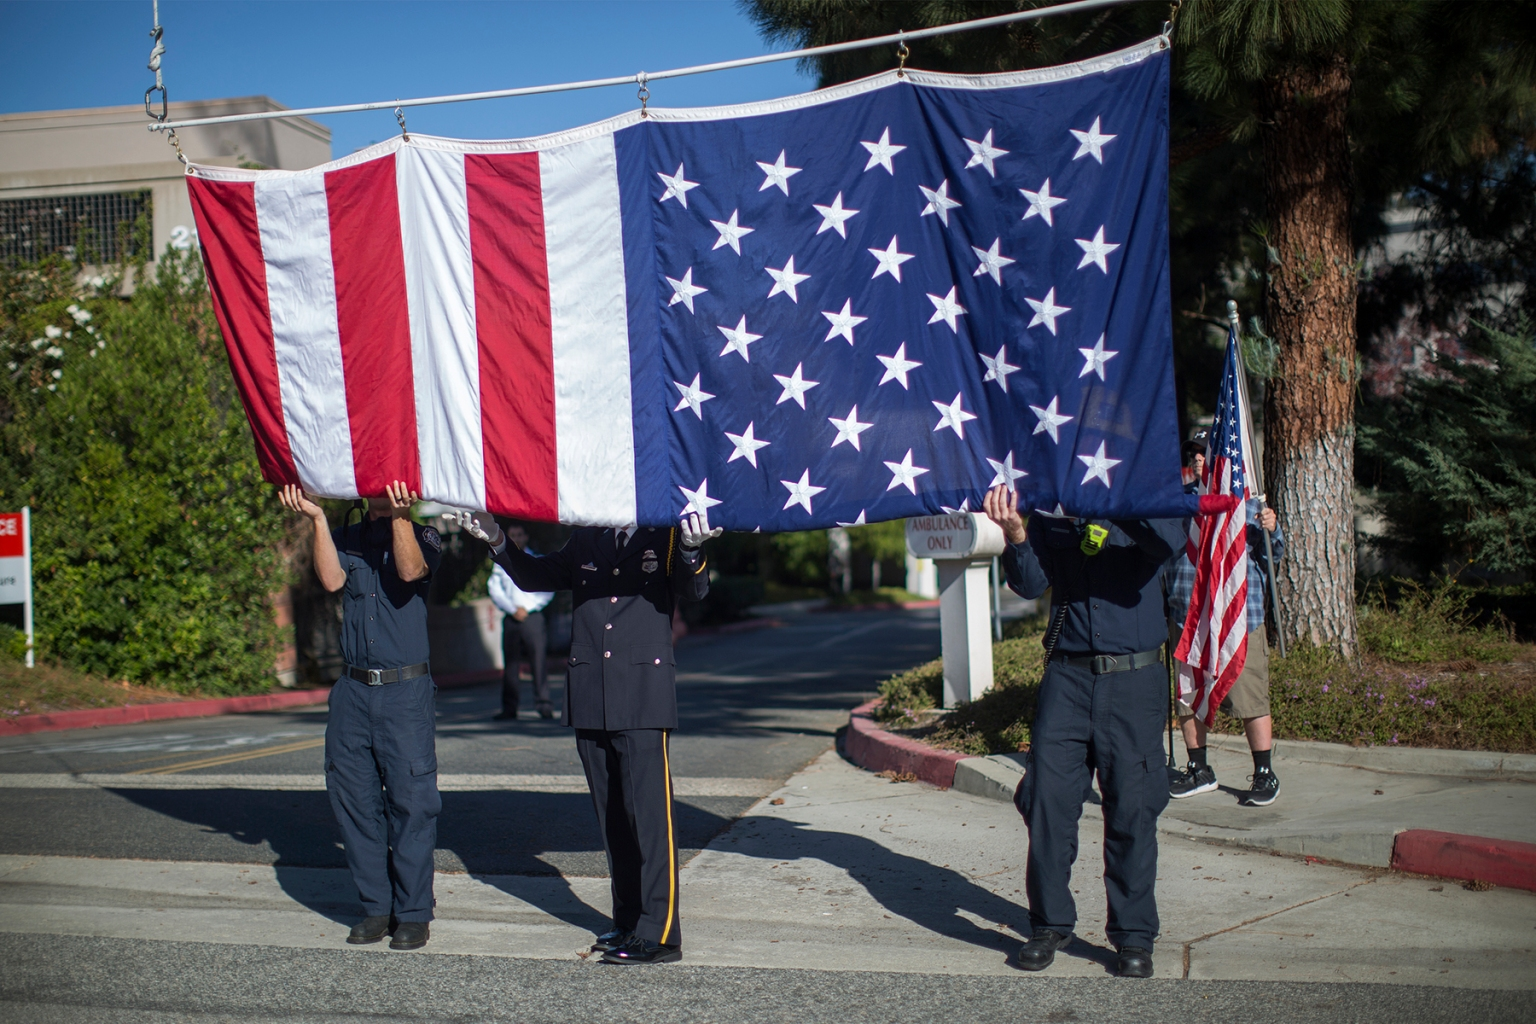 Firefighters raise a flag to hang over the procession carrying the body of Ventura County Sheriff Sgt. Ron Helus, who was killed in the mass shooting at the Borderline Bar and Grill in Thousand Oaks, California, on Nov. 8, 2018. (David McNew/Getty Images)